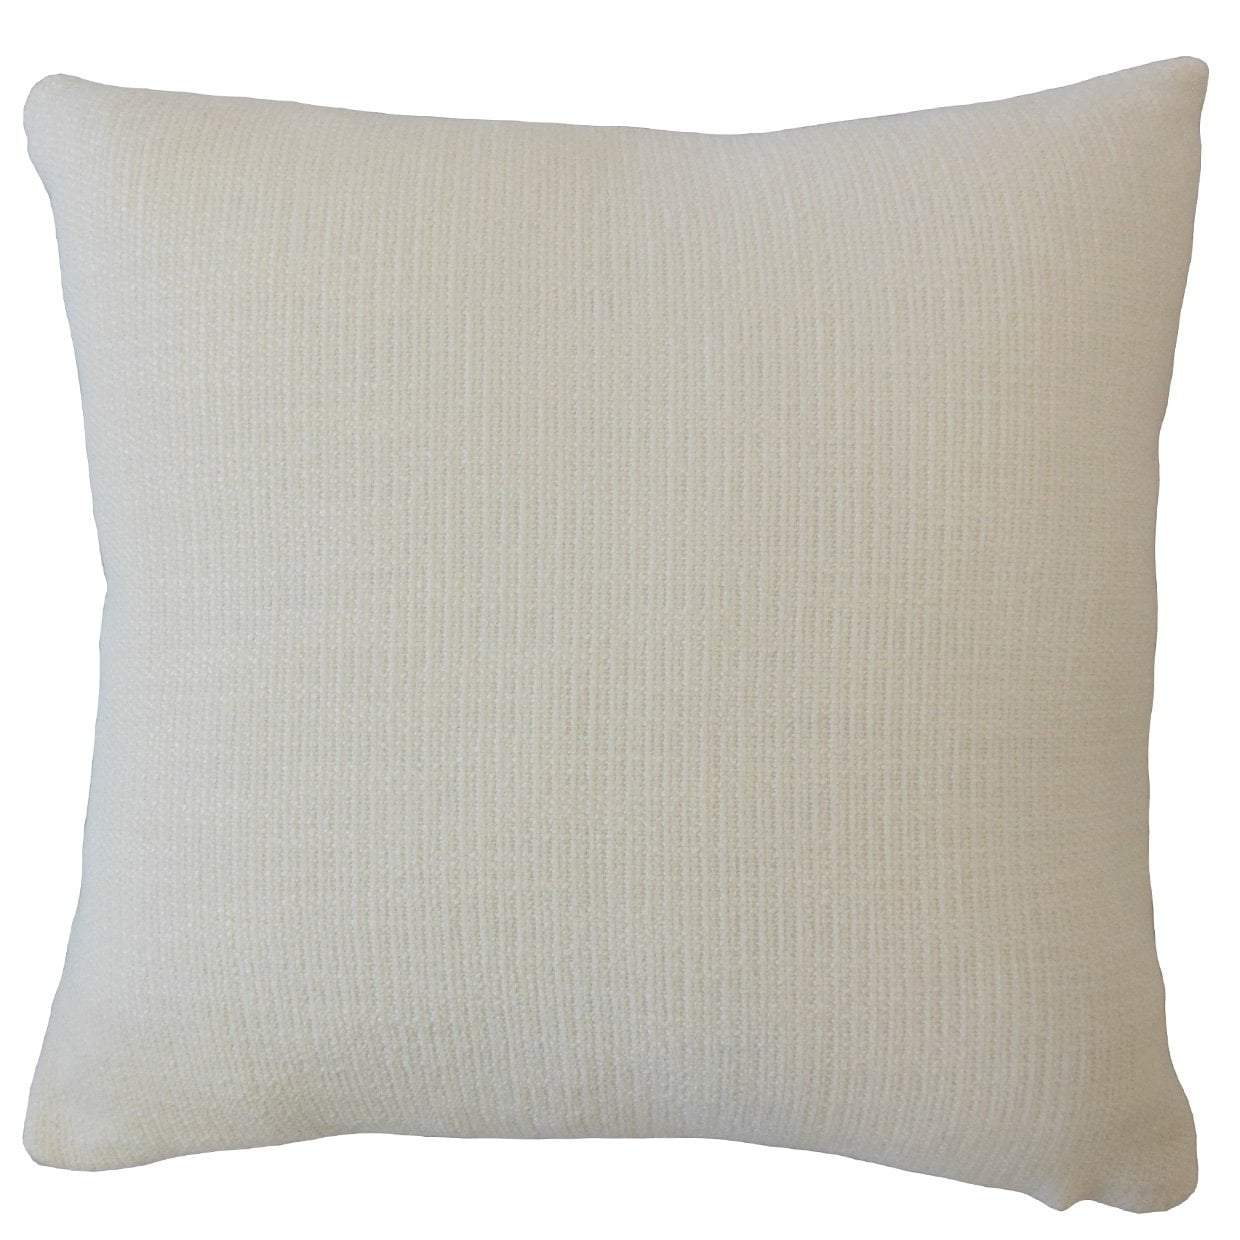 White Synthetic Solid Contemporary Throw Pillow Cover